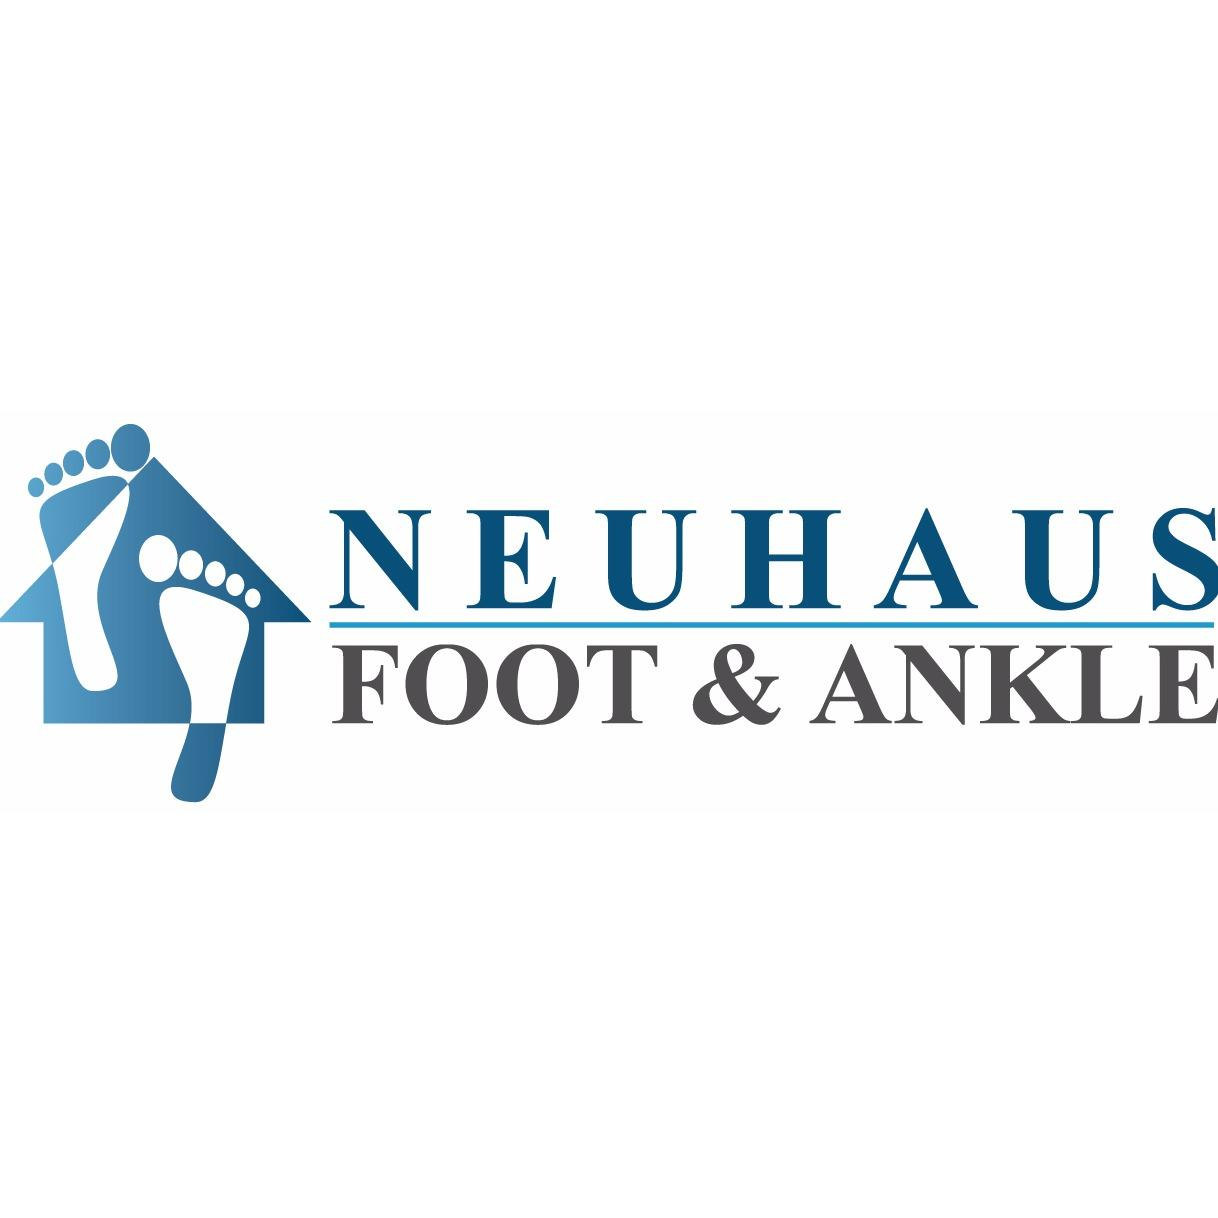 Neuhaus Foot & Ankle, Nashville Office